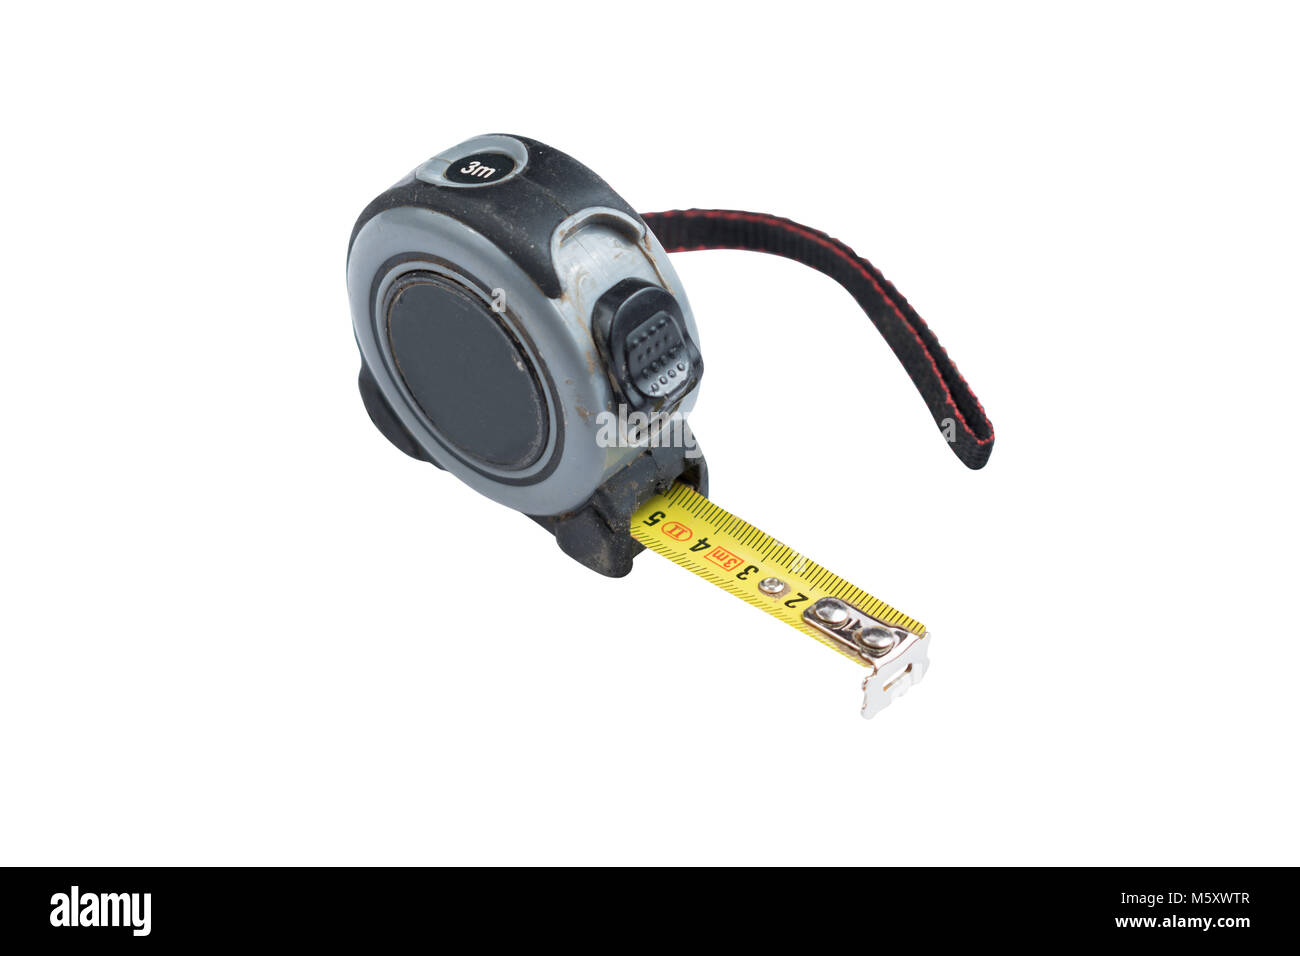 Yellow metal measuring tape in plastic grey case isolated on a white background. Path saved. - Stock Image